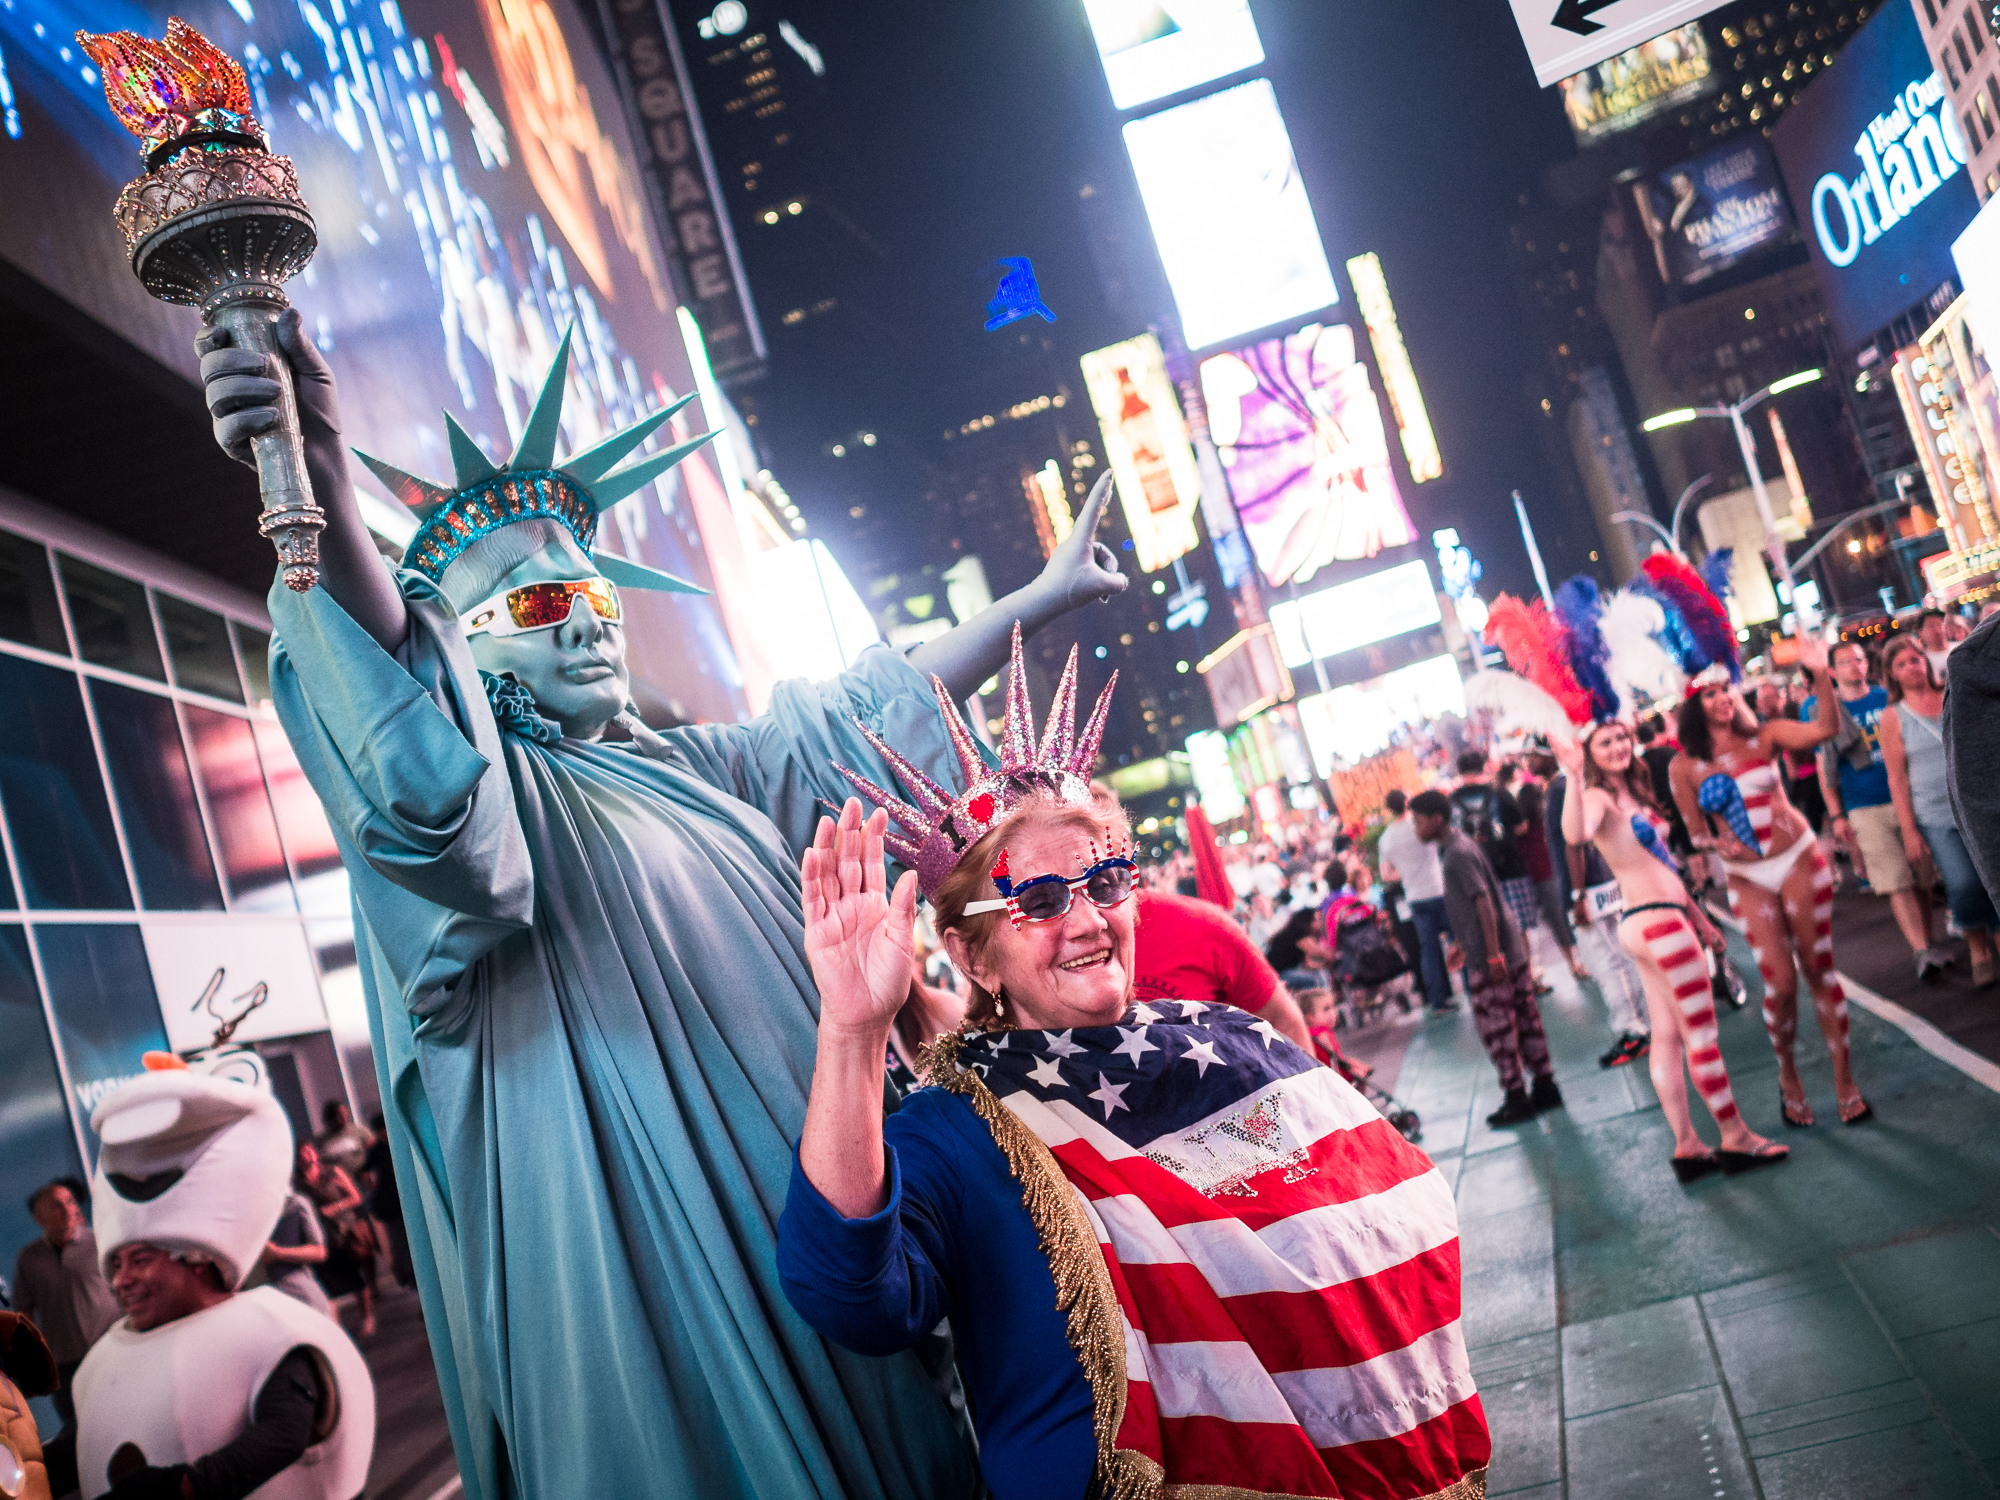 Wo man in nyc Finanzleute trifft